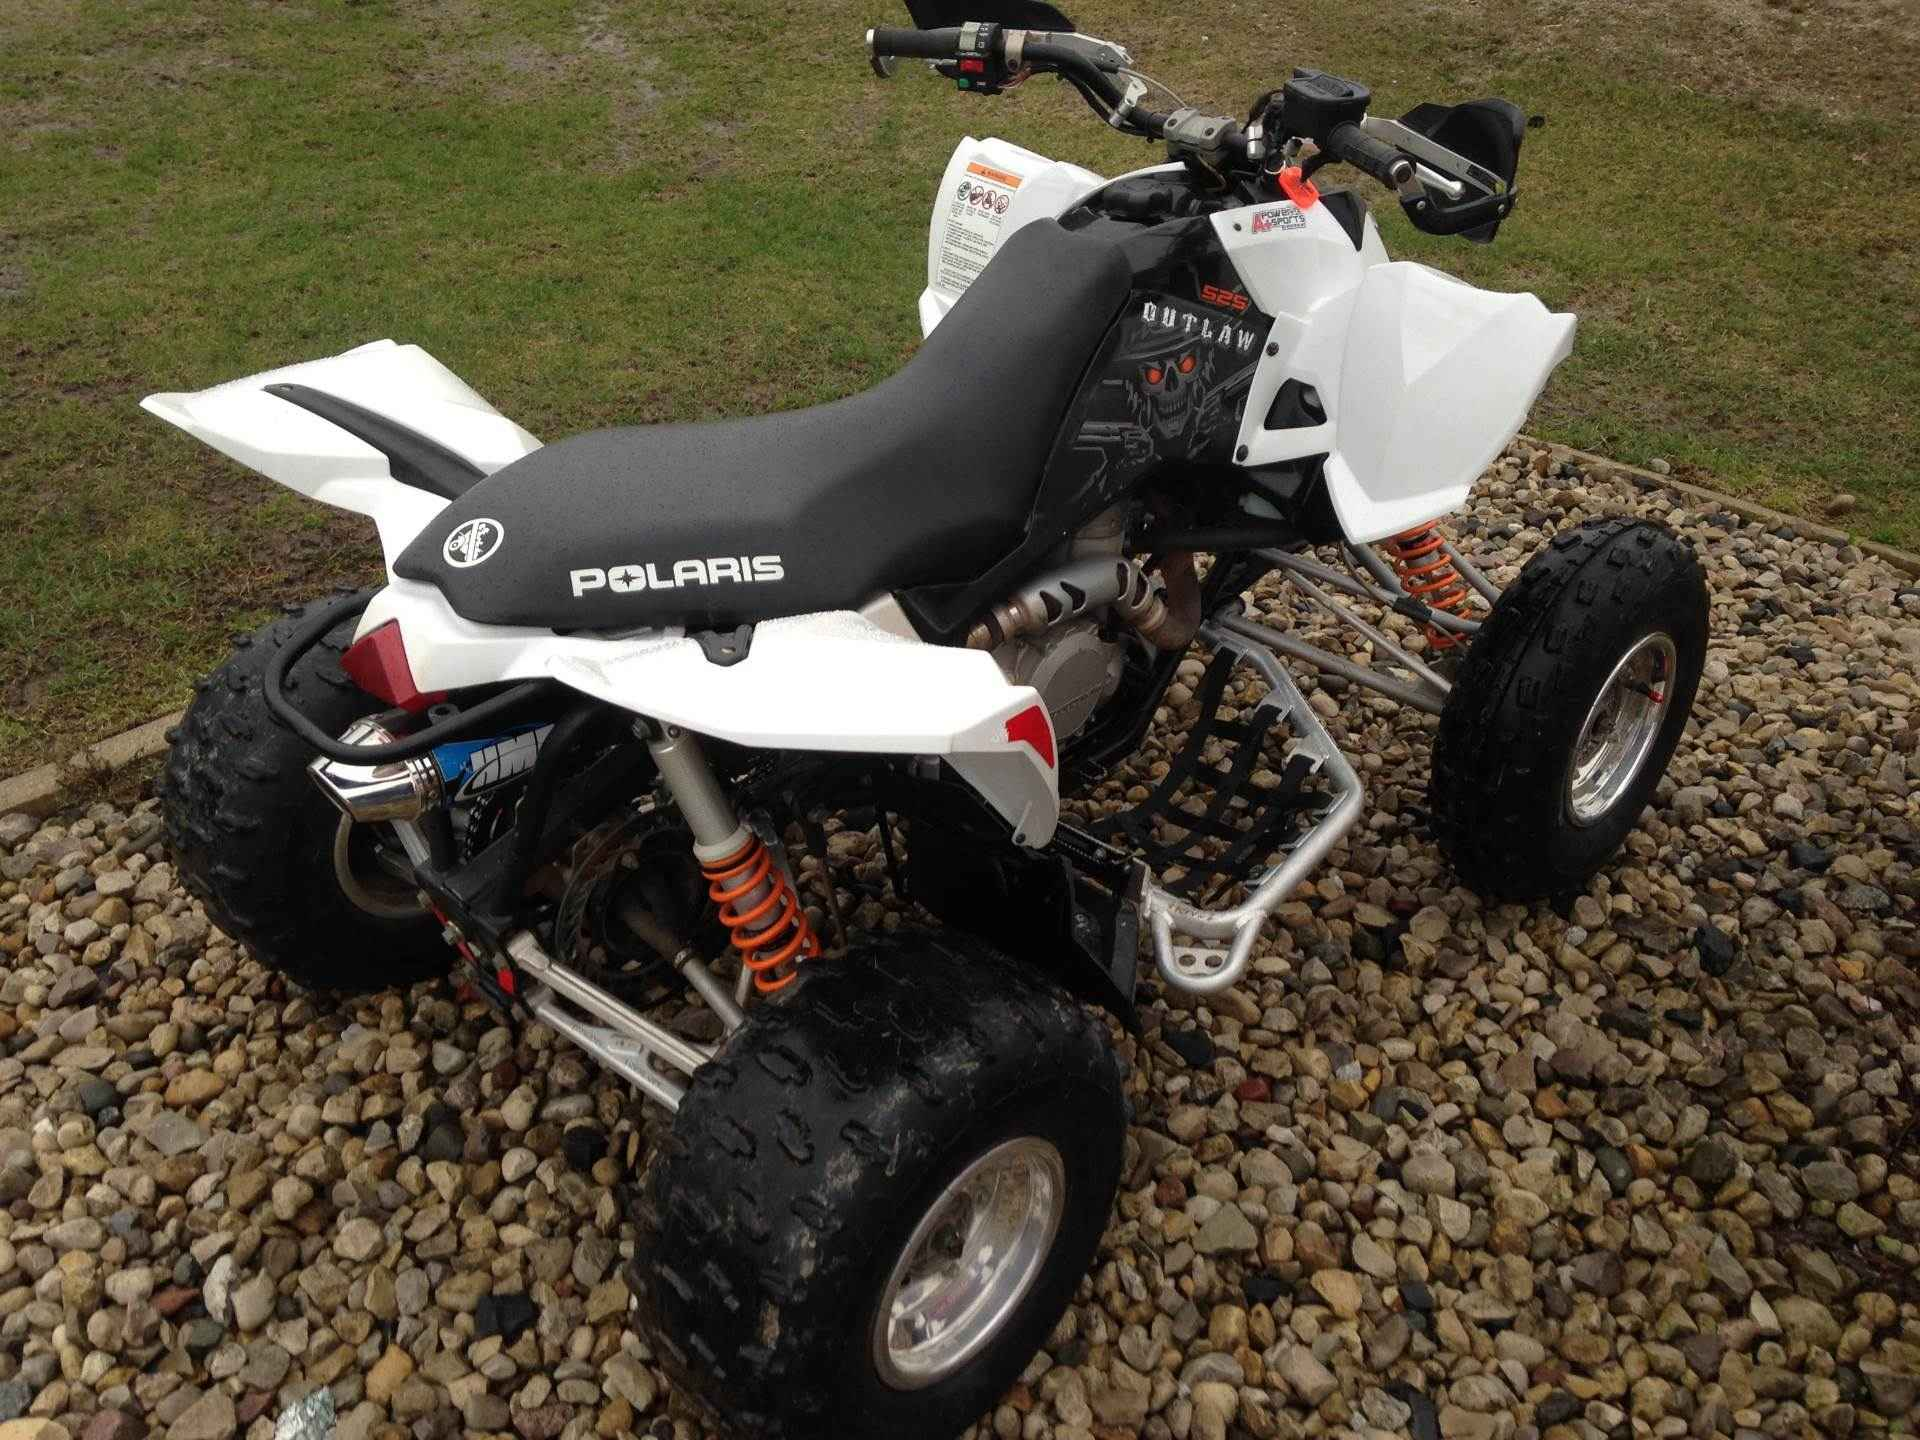 used 2007 polaris outlaw 525 atvs for sale in wisconsin on atv trades rh atvtrades com polaris outlaw 525 owner's manual pdf 2007 polaris outlaw 525 service manual